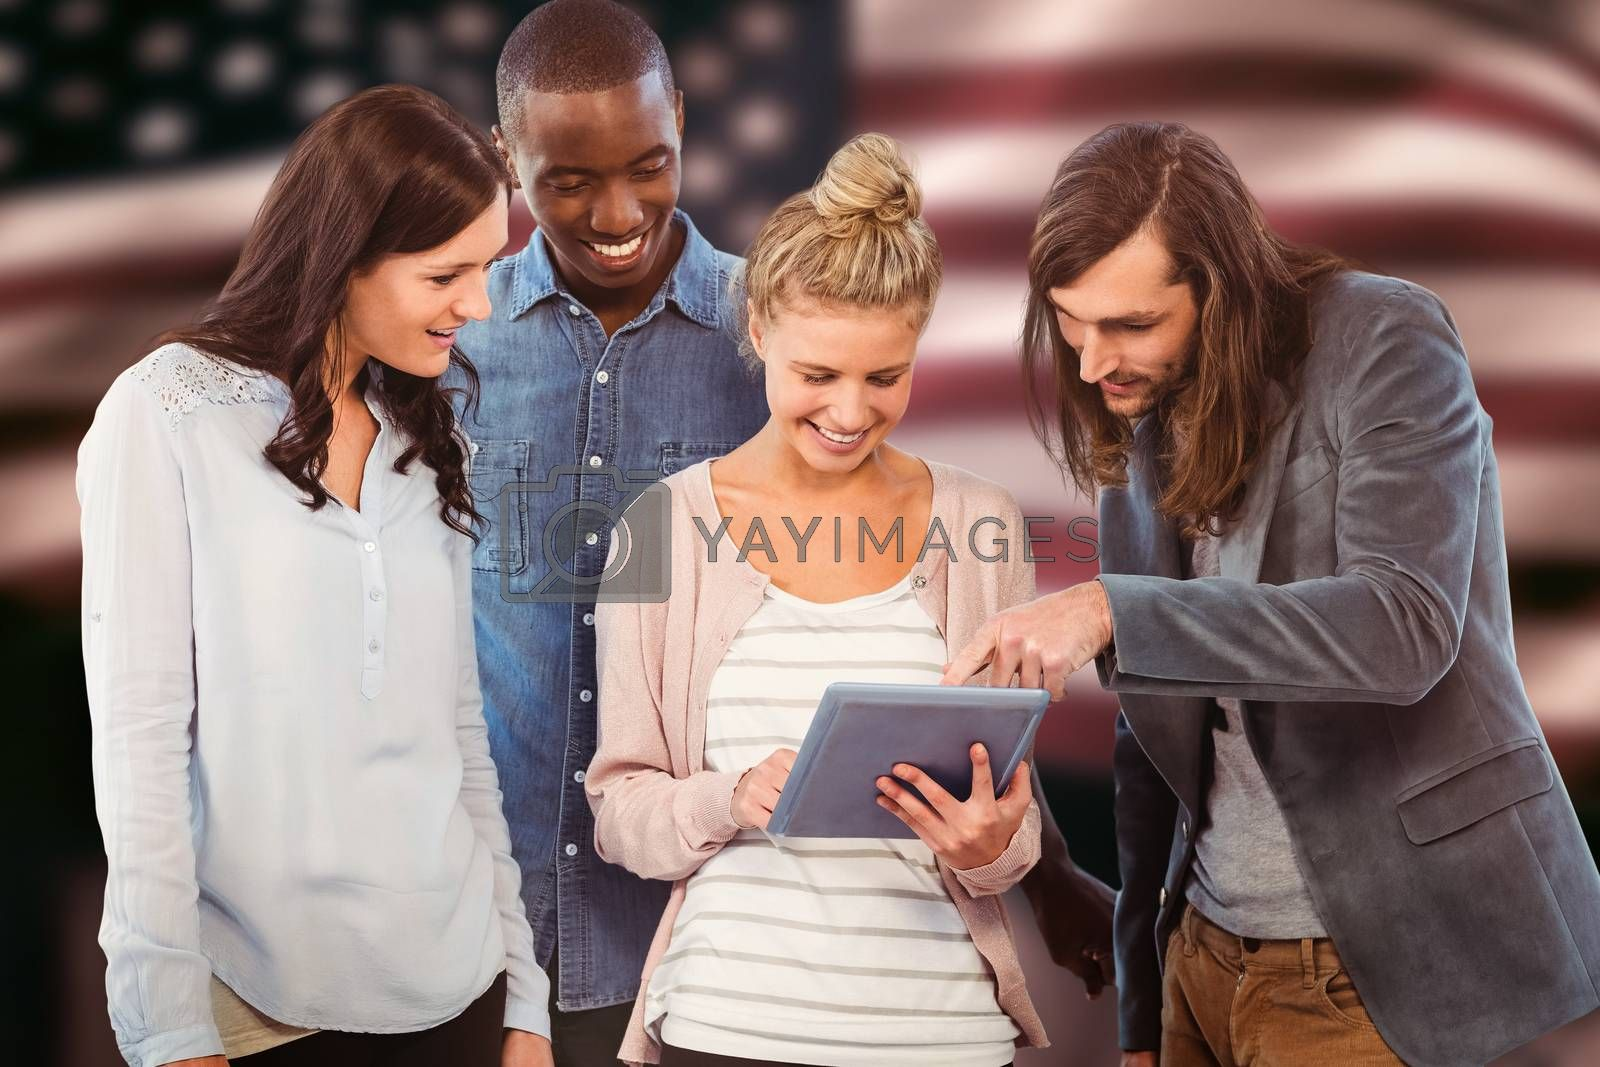 Happy woman holding digital tablet and discussing with coworkers  against composite image of digitally generated united states national flag